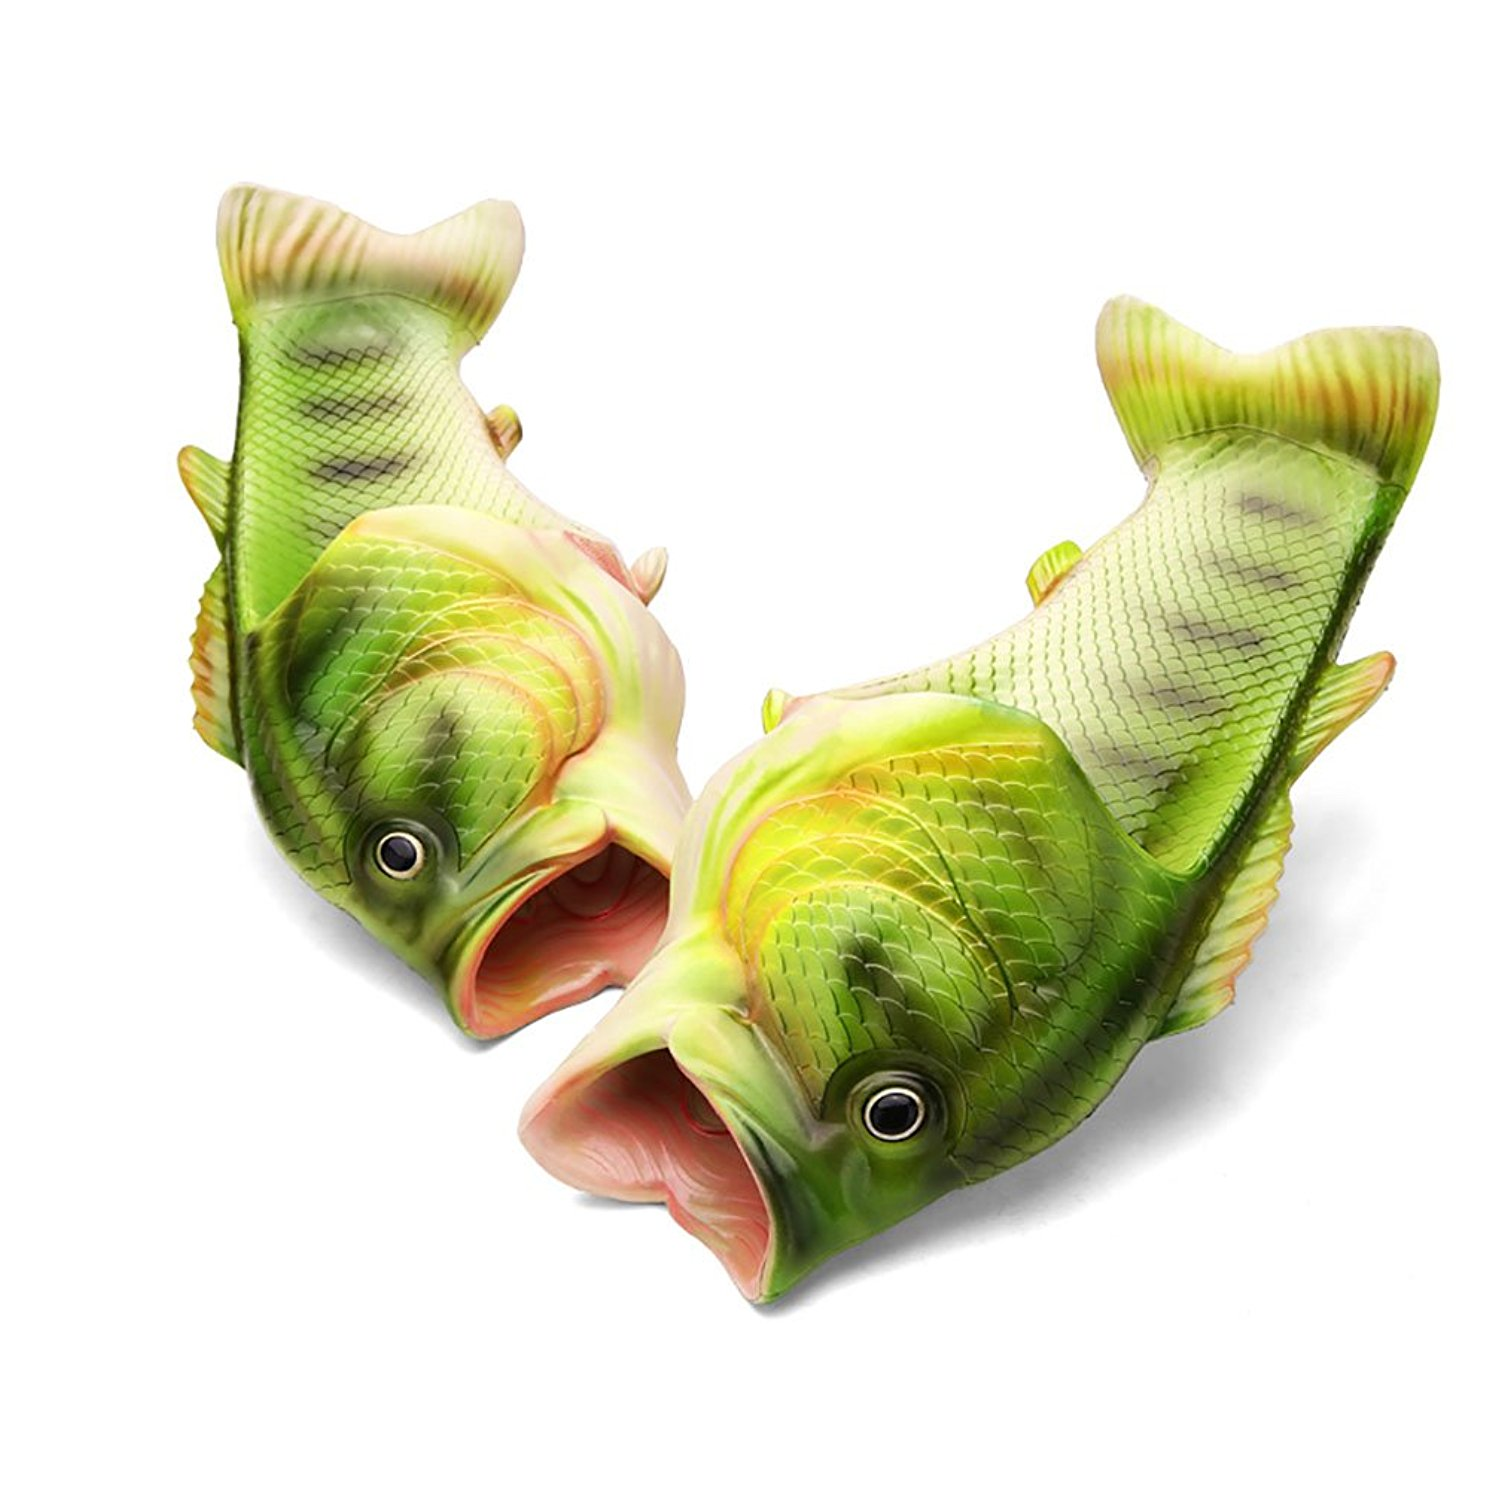 chausson-sandales-poissons-2